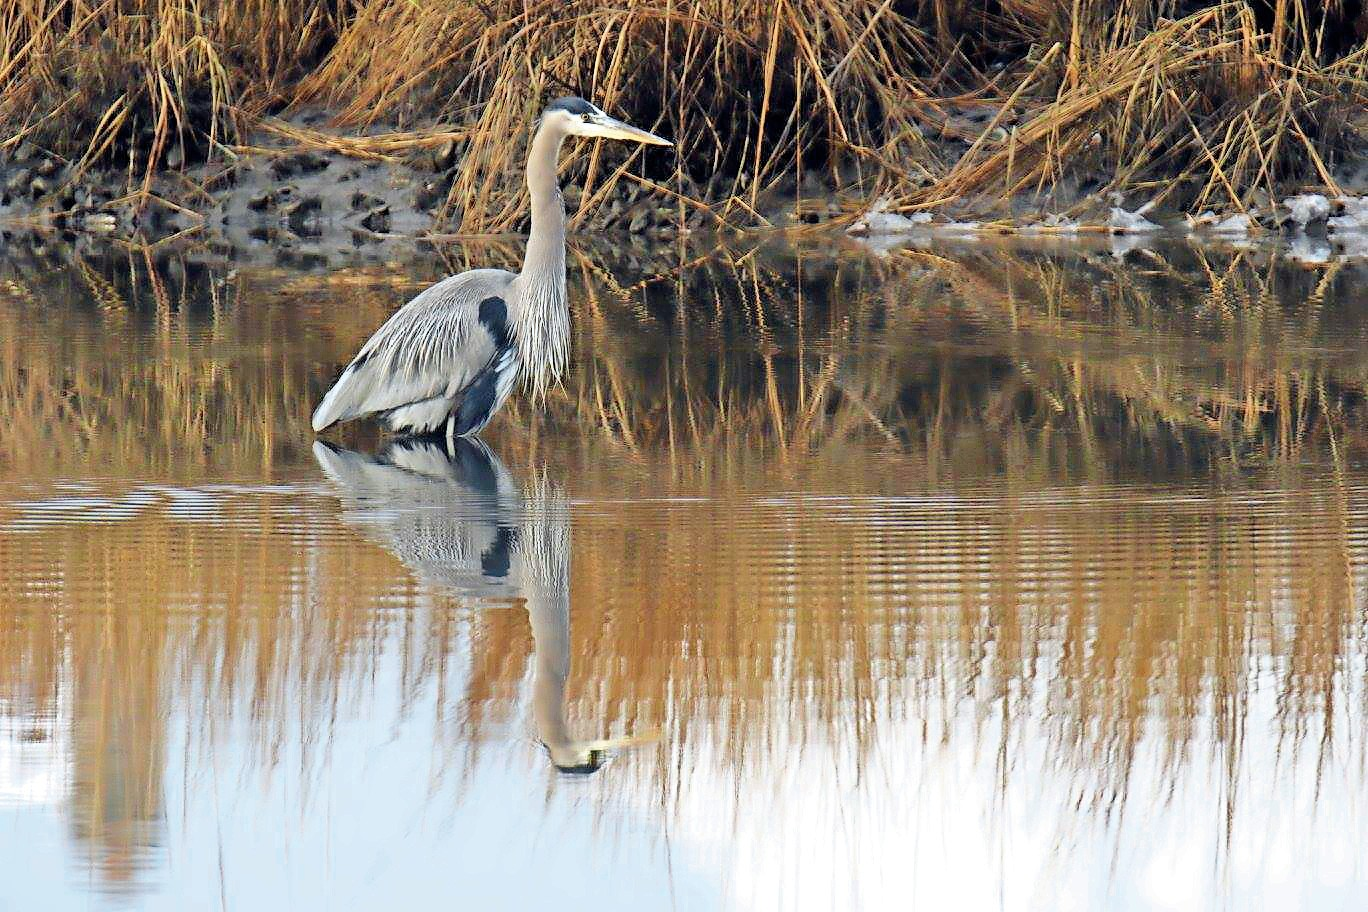 Great blue herons are among the more than 200 species of birds that have been spotted at the preserve.